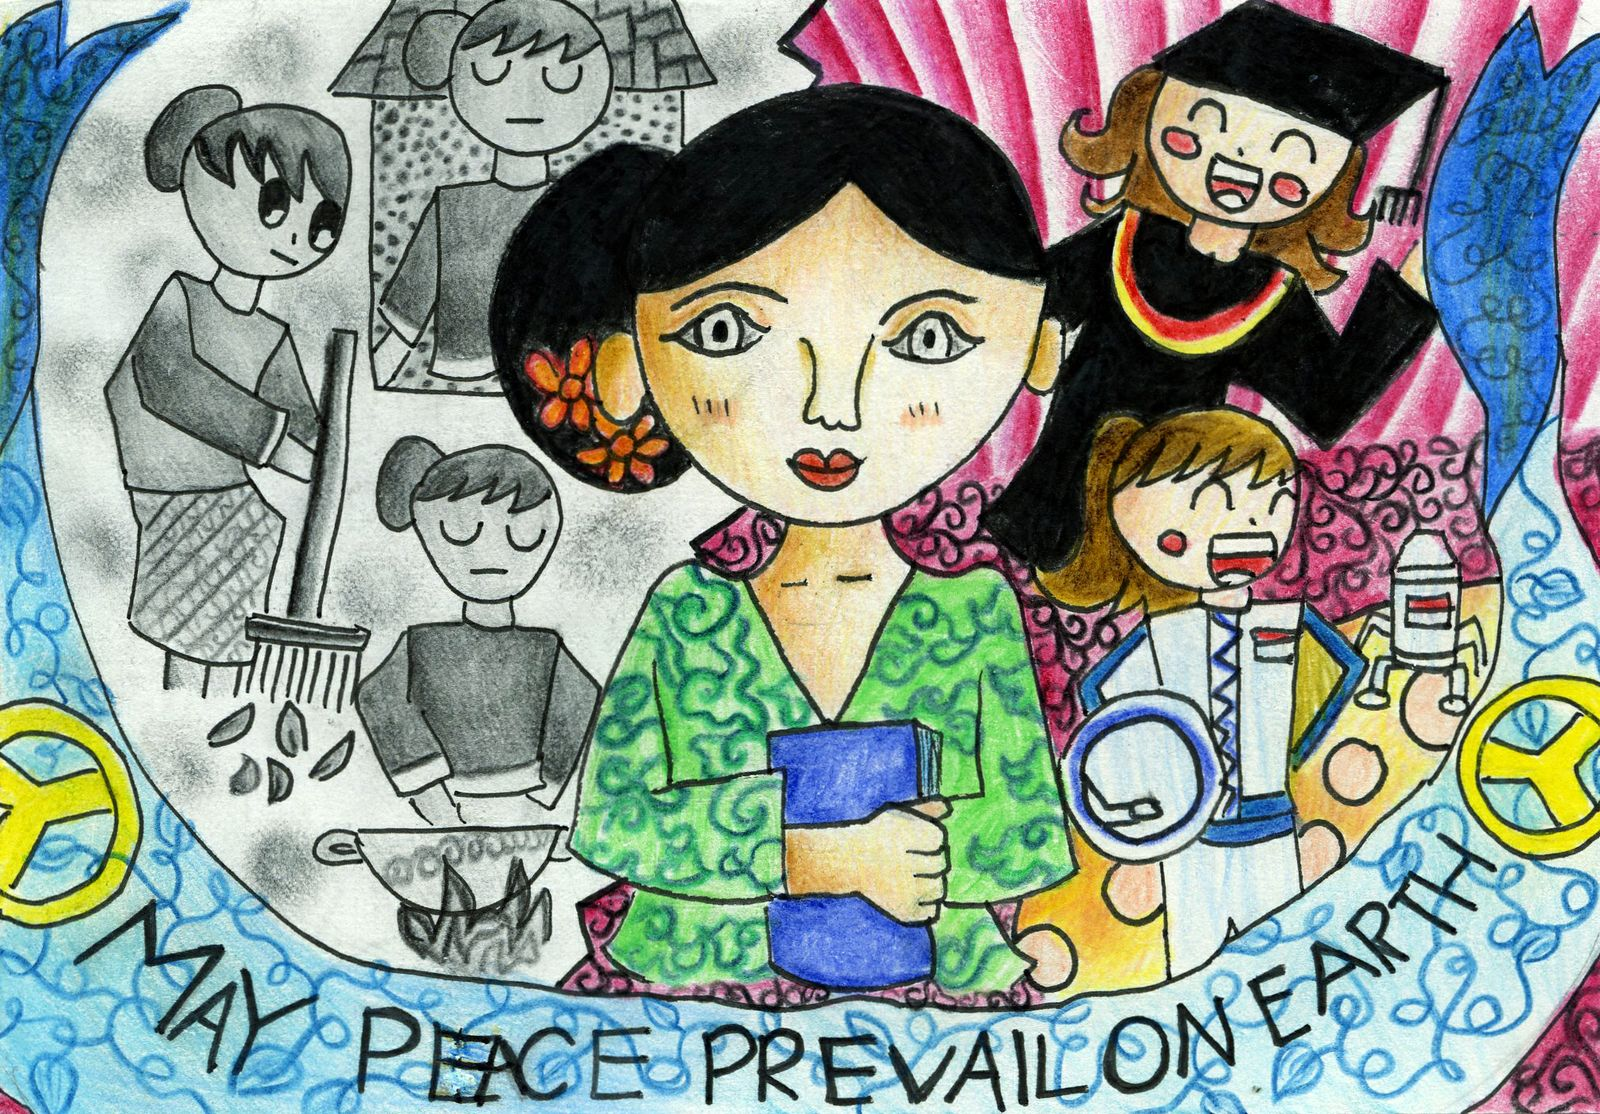 may peace prevail on earth essay Essay on world peace  proficient essay on peace prevail on peace  an independent forum for young people around the washington may prevail on earth.